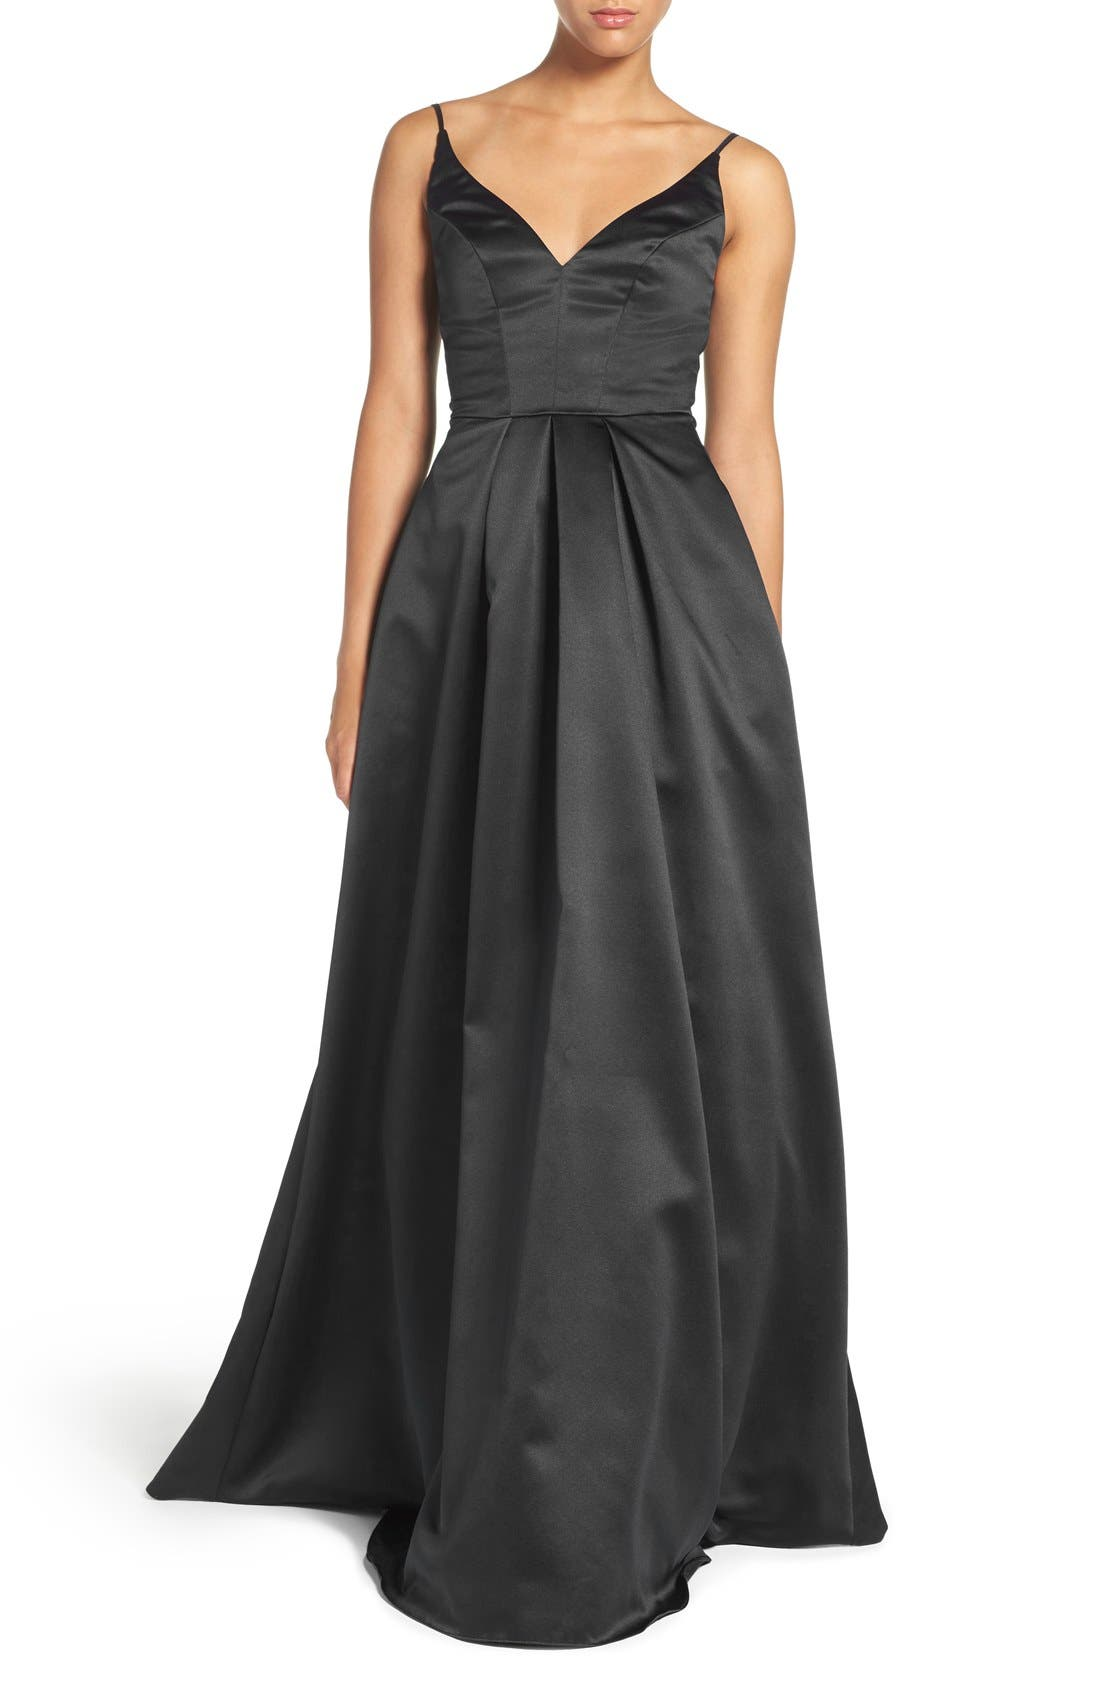 Main Image - Hayley Paige Occasions Sweetheart Neck Satin A-Line Gown